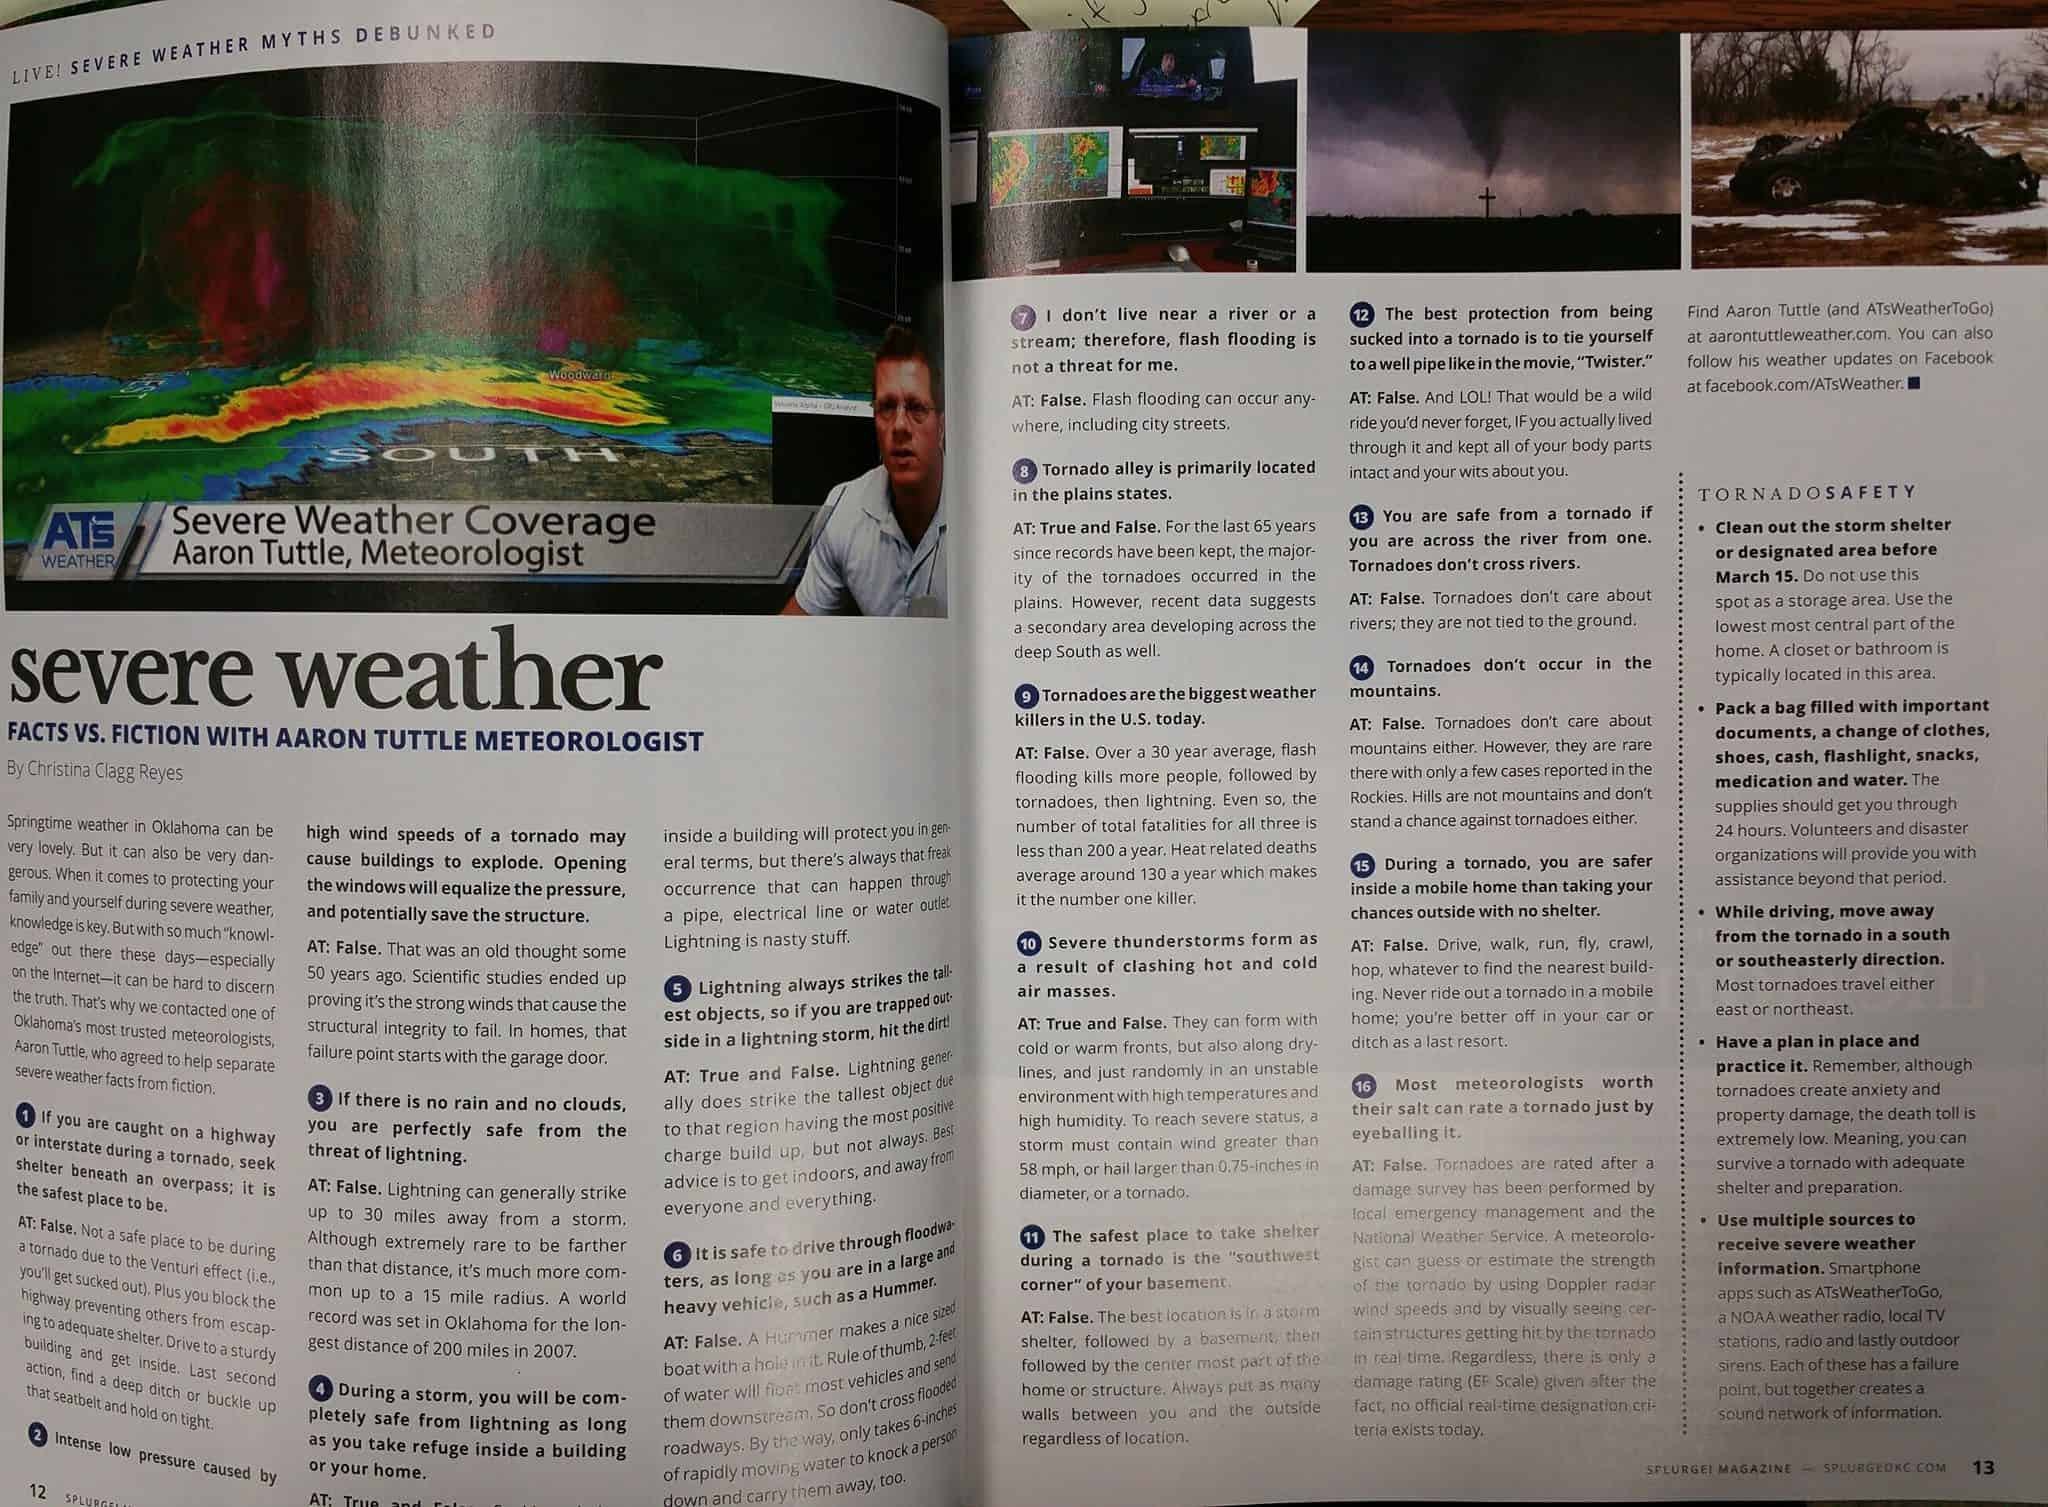 Separating Weather Fact from Fiction in Splurge! Magazine